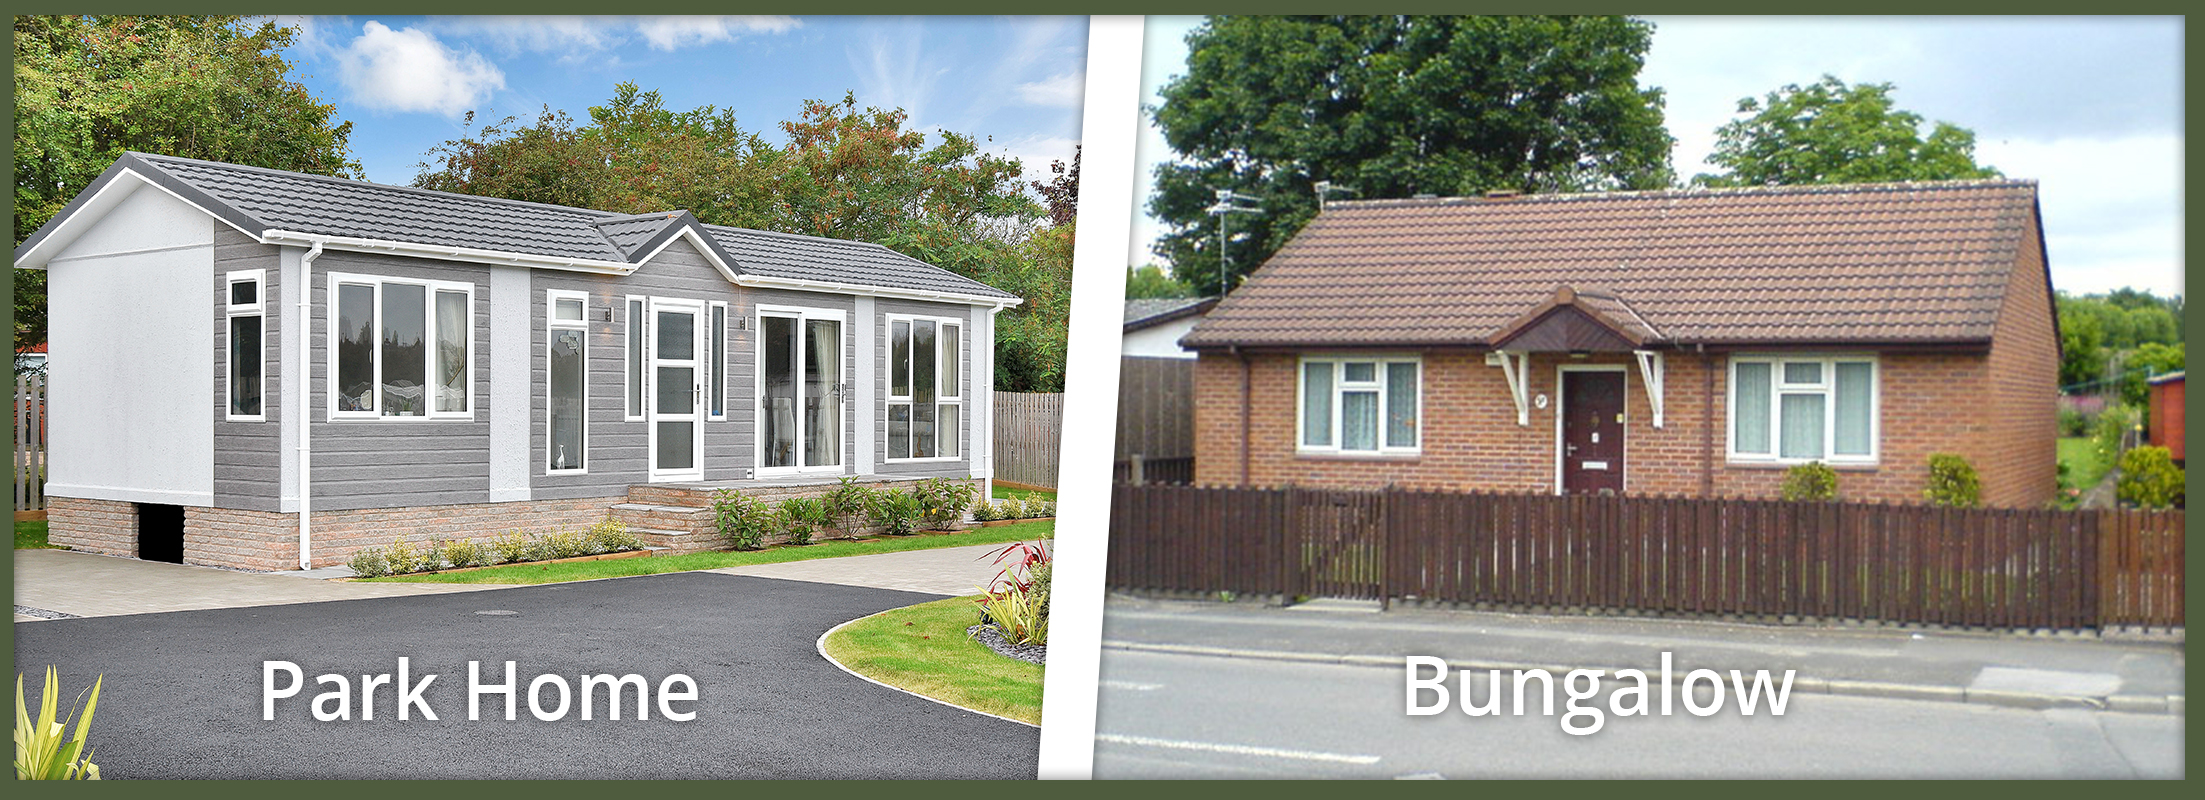 mobile homes for sale leicestershire bungalow